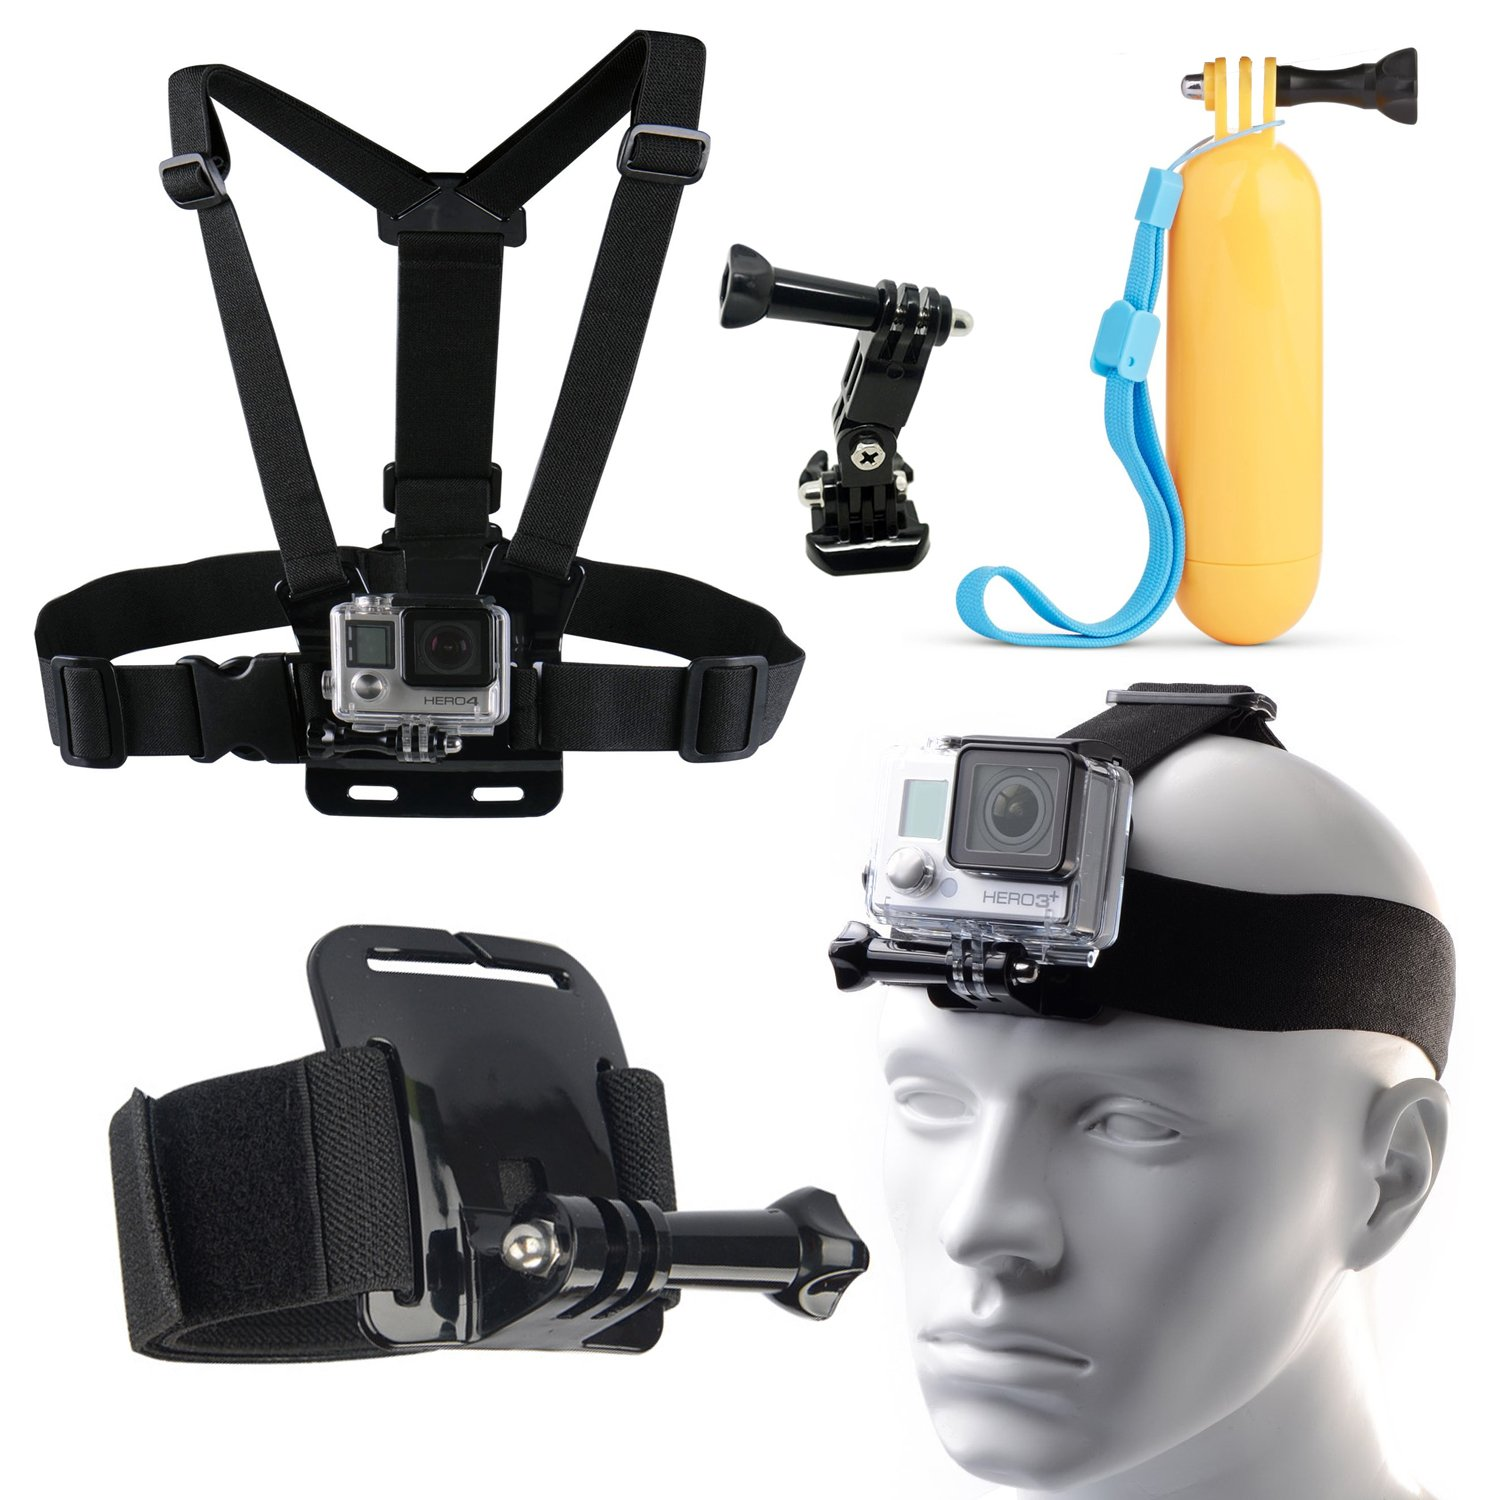 8-in-1 Body Set of Head Chest Wrist Mount Monopod Accessories Kit Bundle for GoPro Hero 4 3 3+ 2 Plus Session